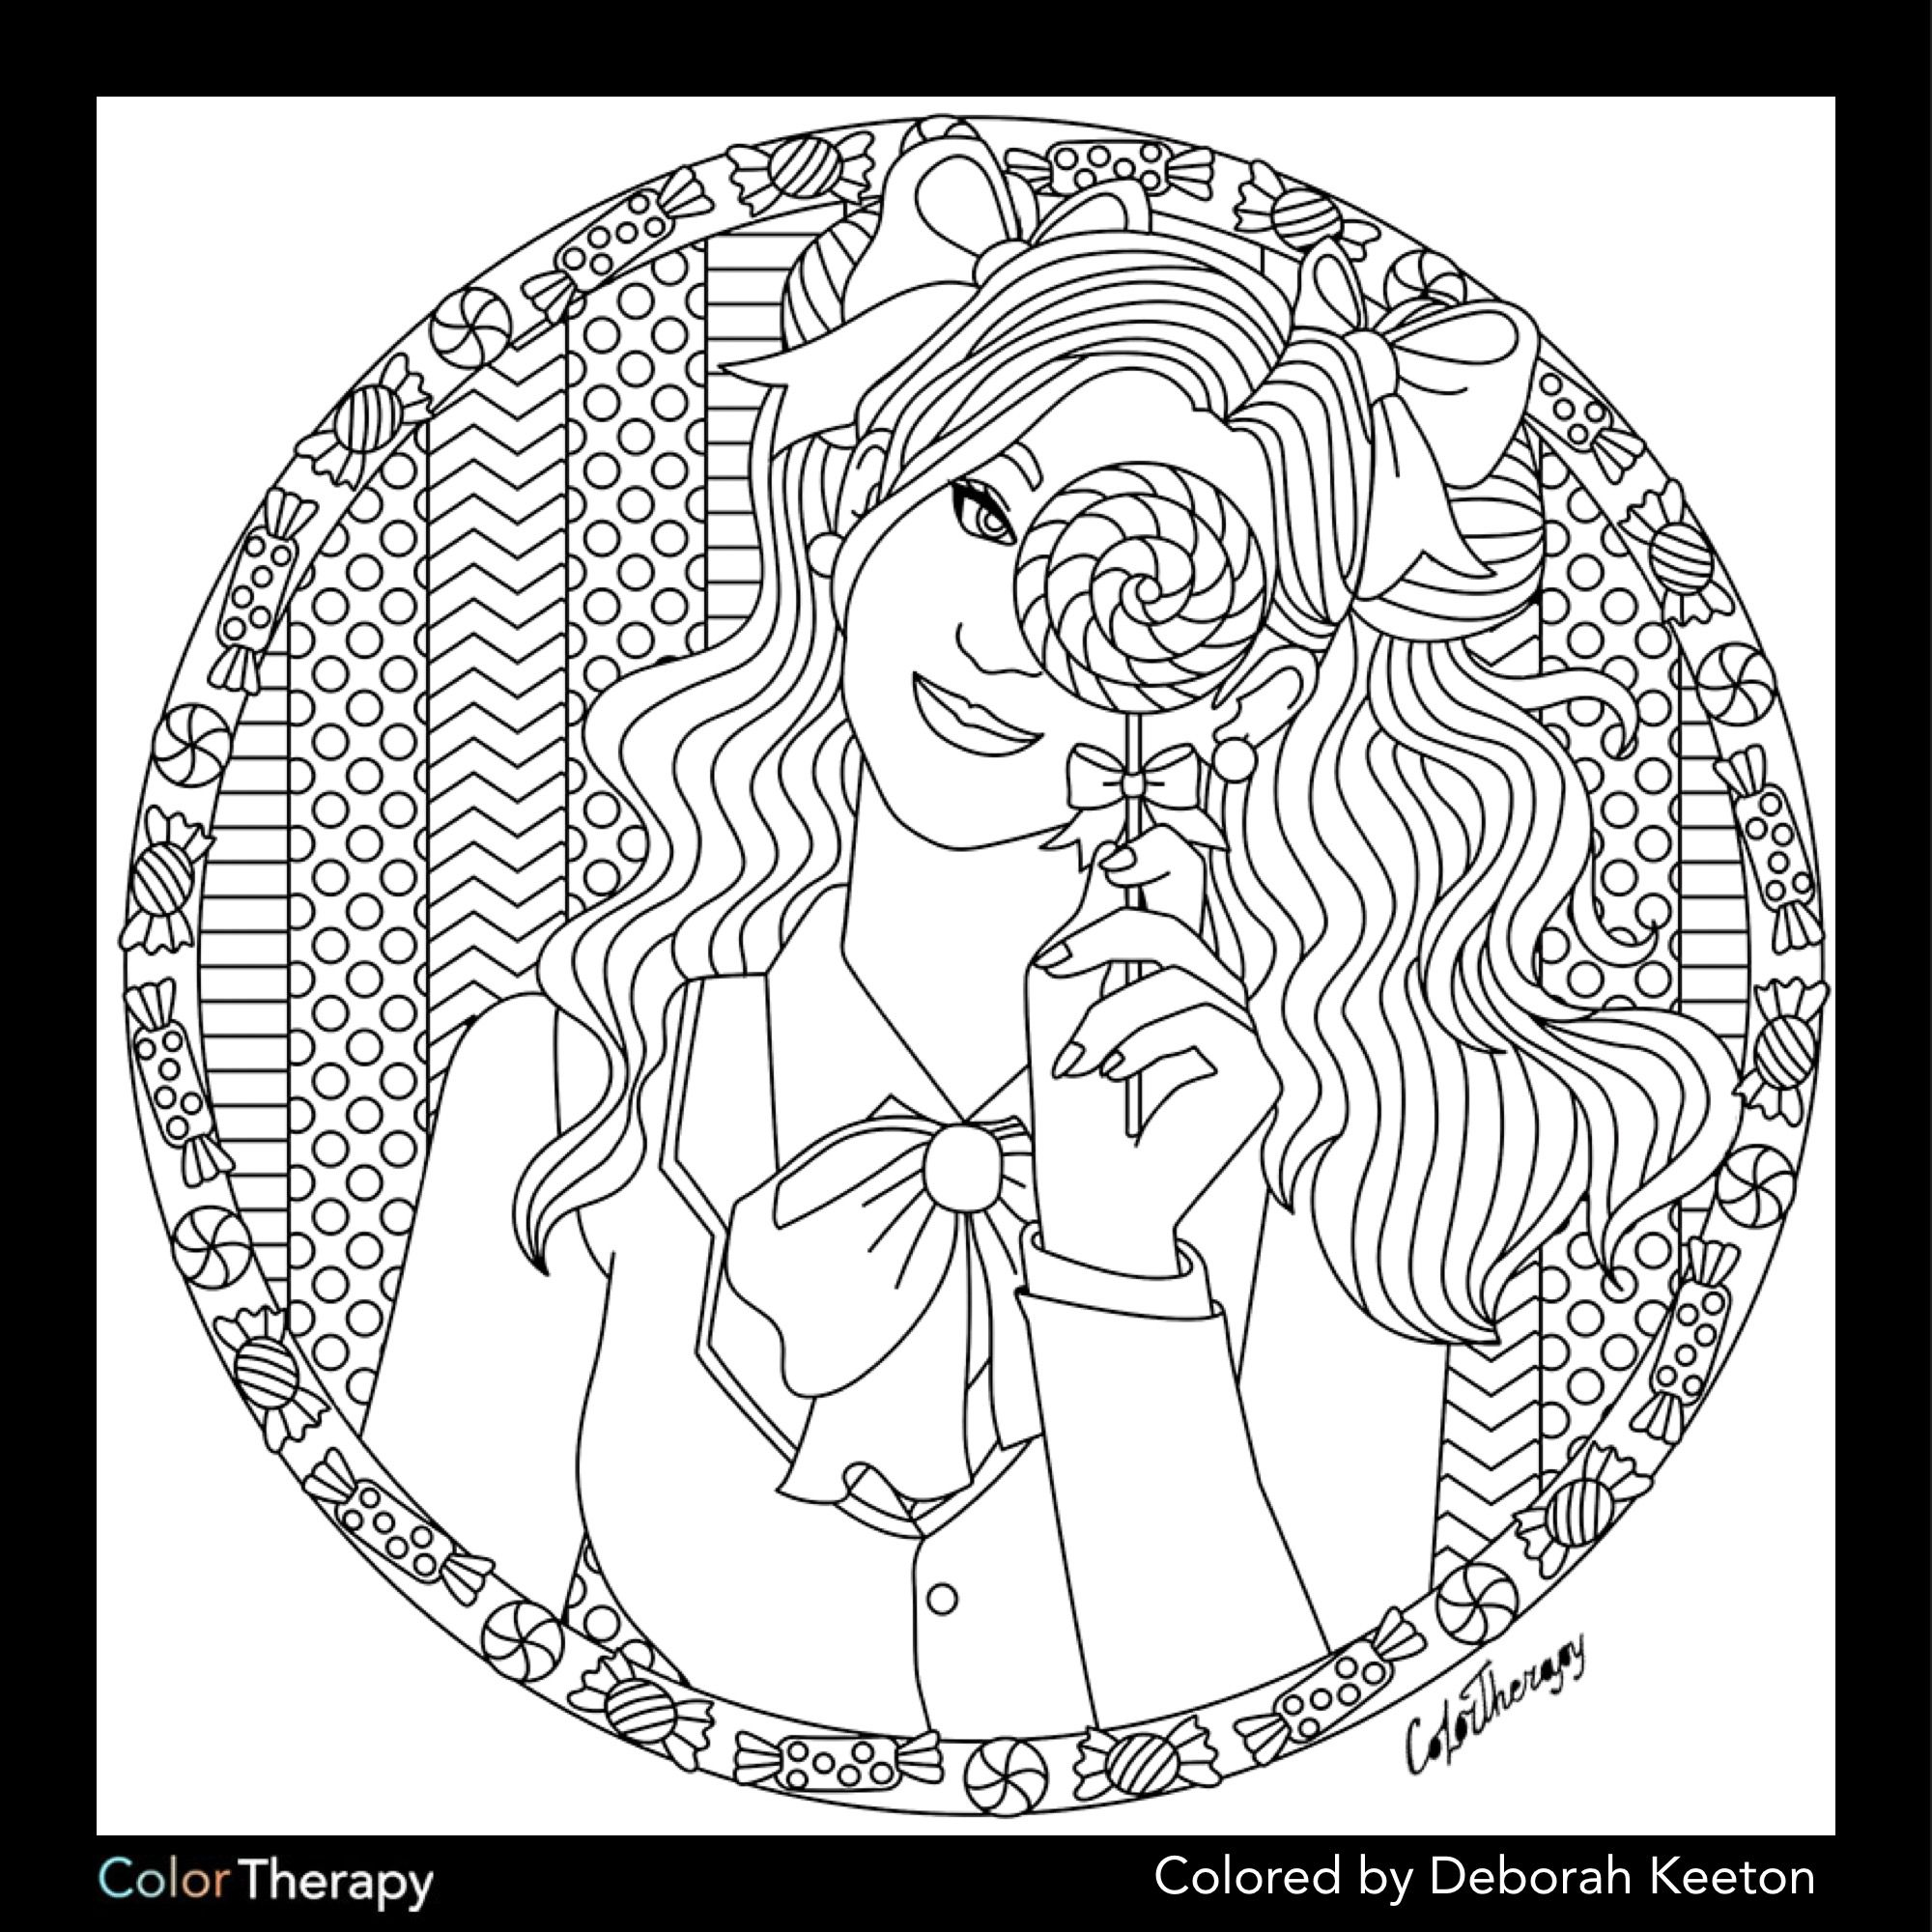 Mandala coloring pages art therapy recovery - Adult Coloring Pages Coloring Books Mandala Coloring My Wife Doodle Art Art Therapy Svg File Templates The Memory